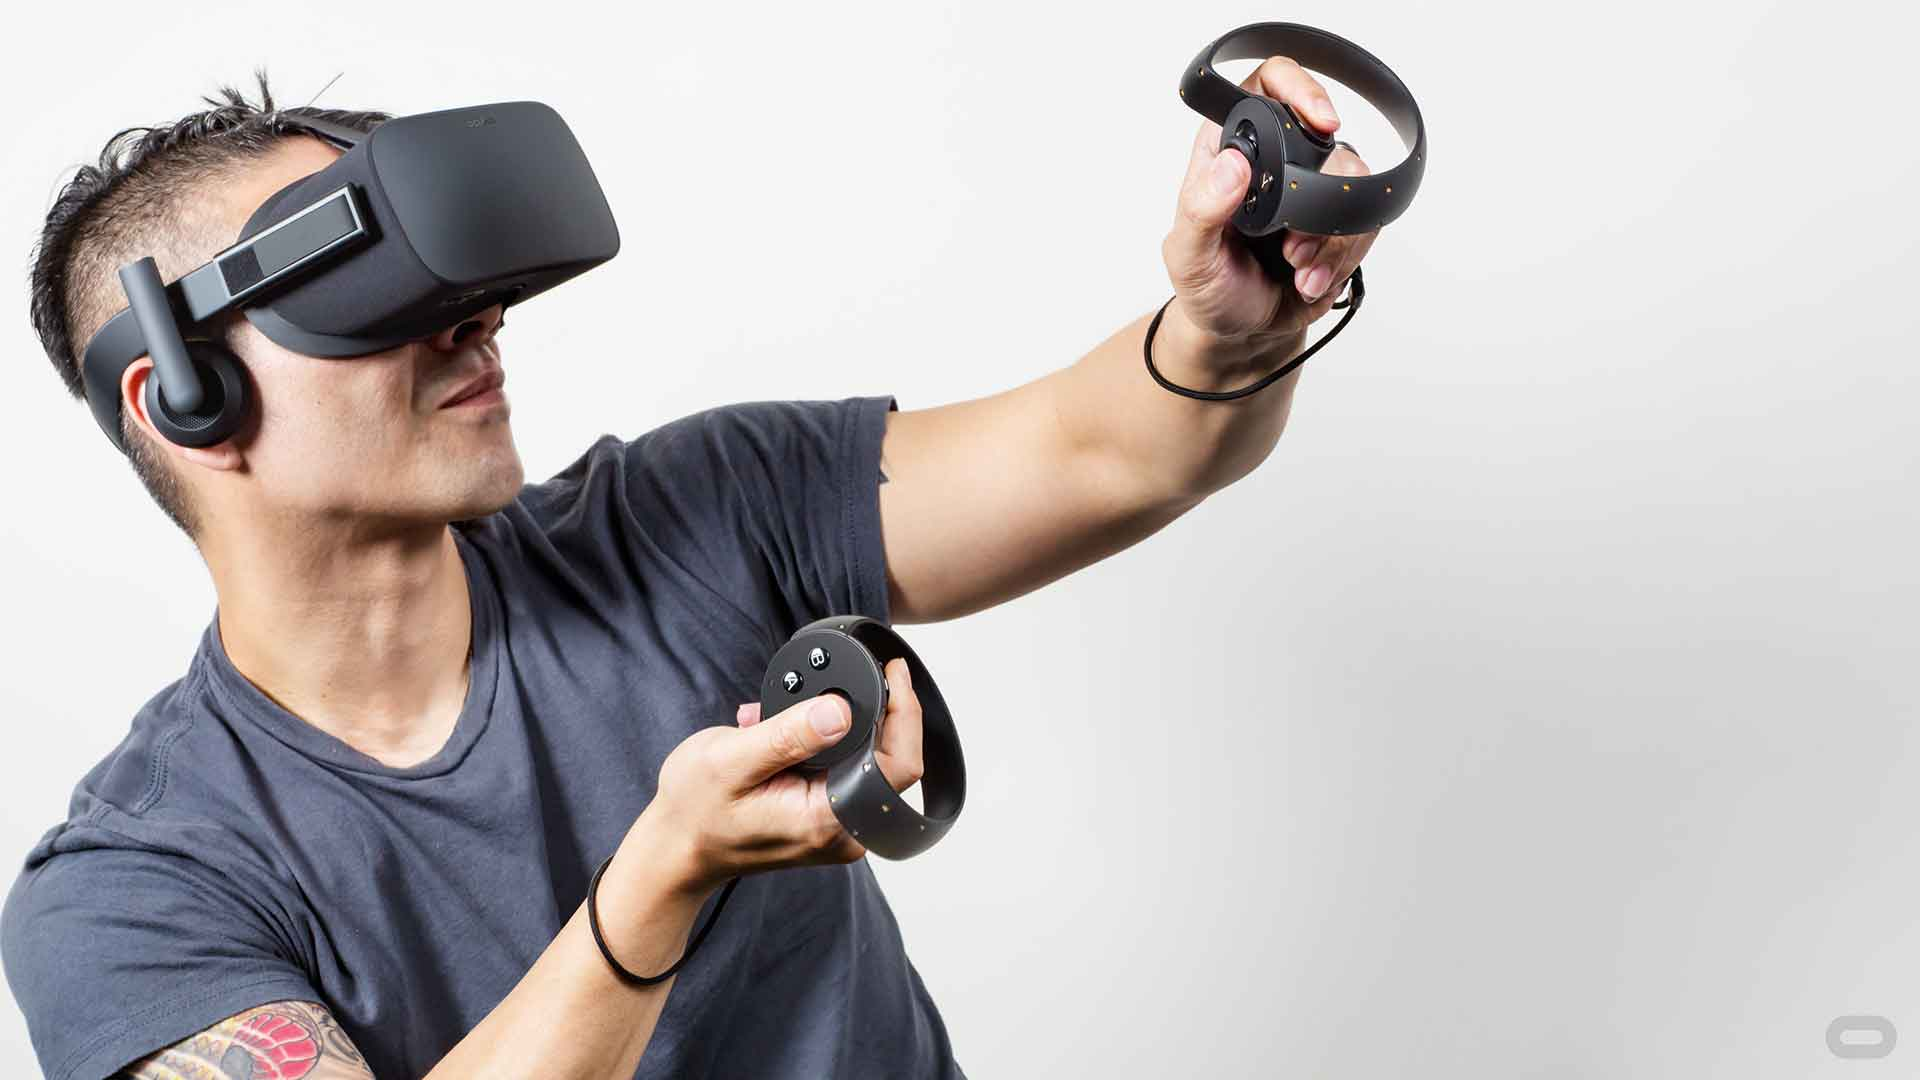 Oculus Rift VR Release Pre-Order Comes With EVE:Valkyrie